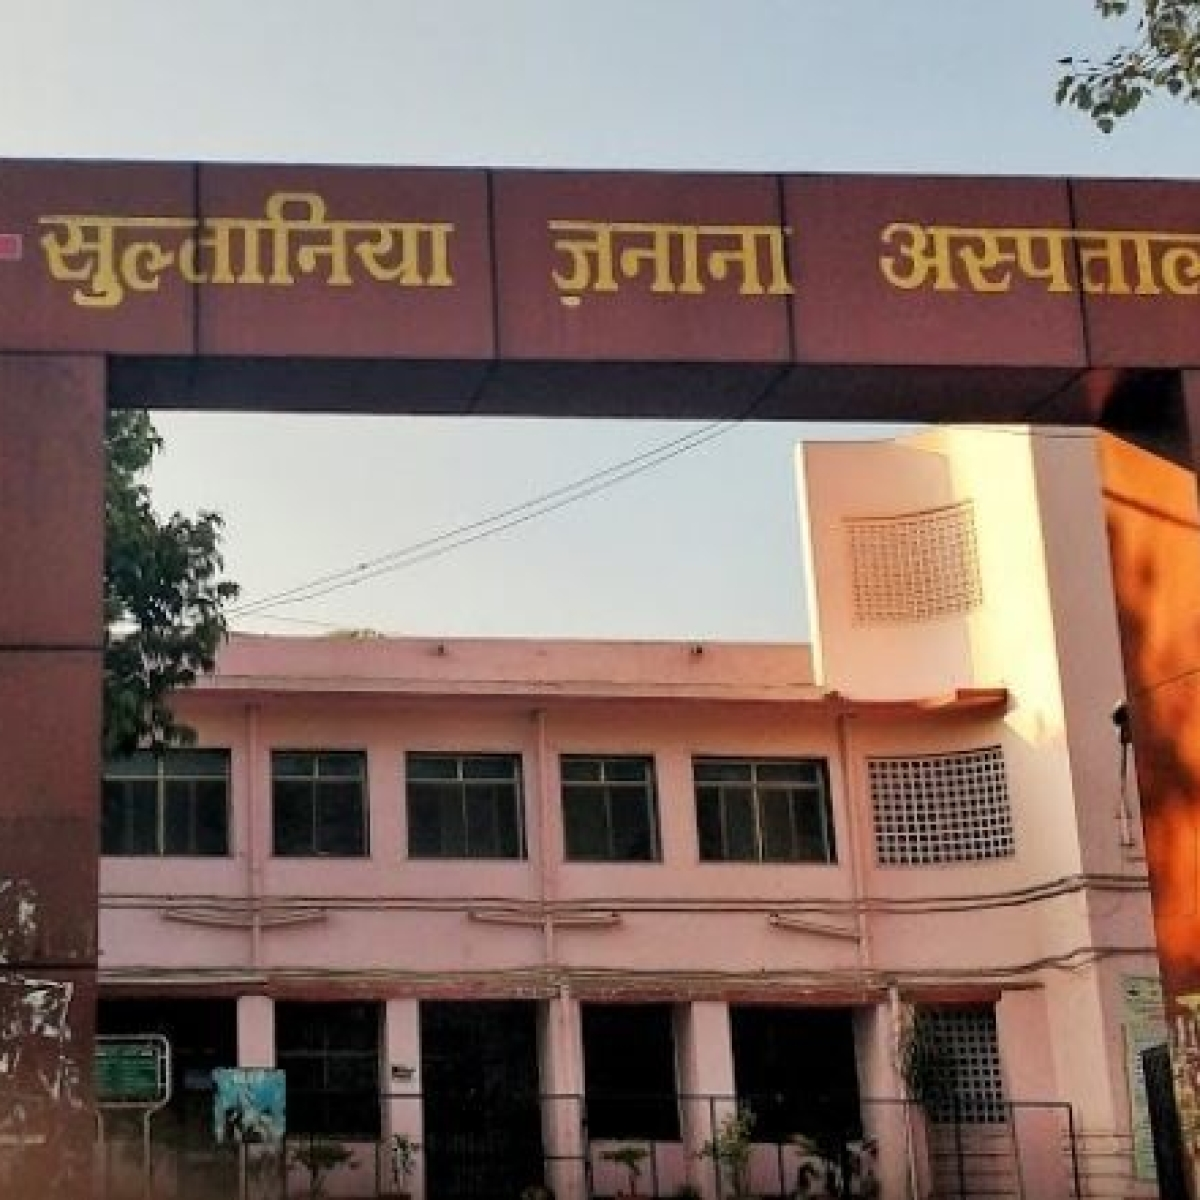 Bhopal: Only one toilet for 235 women patients at Sultania Hospital, stays shut at night